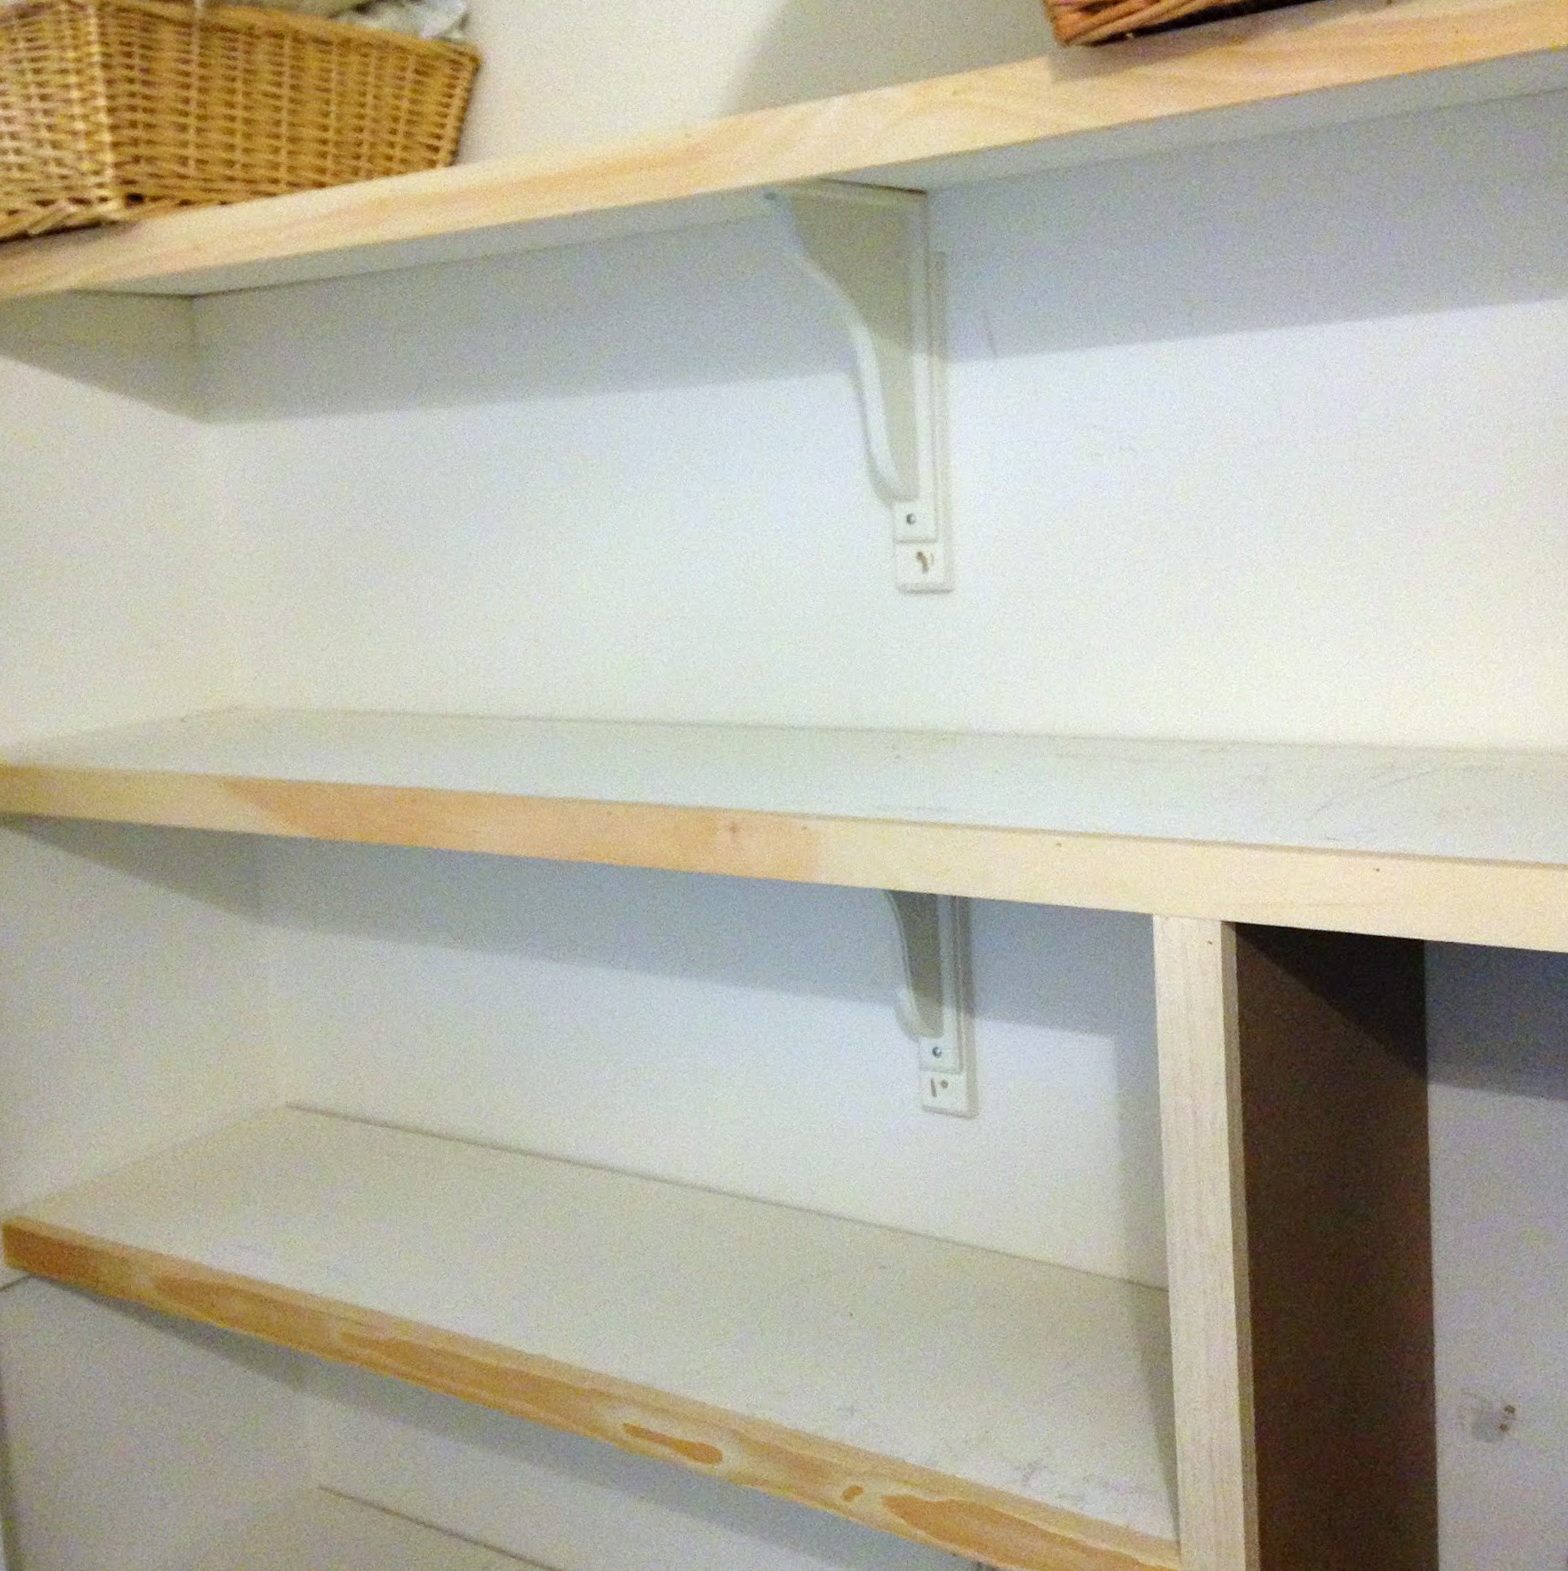 Linen Closet Shelving Depth Home Design Ideas